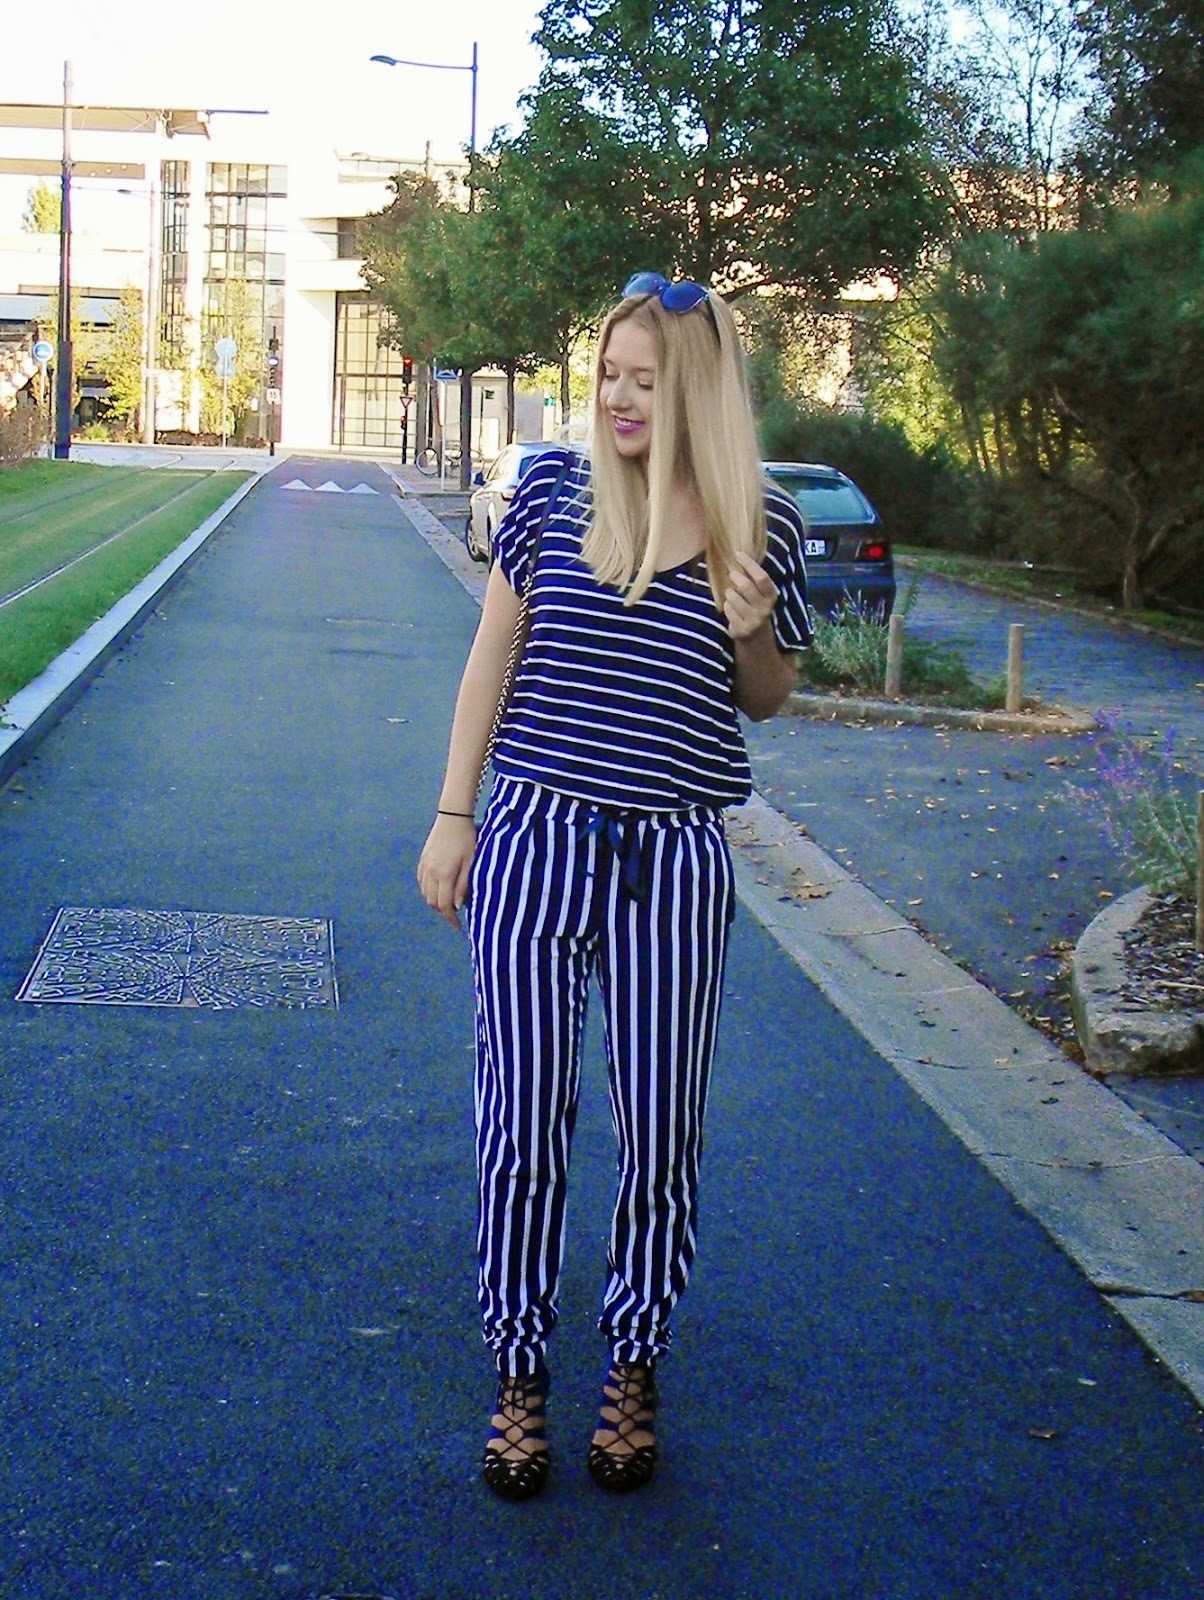 Black t shirt navy pants - Women S Navy And White Horizontal Striped V Neck T Shirt Navy And White Vertical Striped Pajama Pants Black Leather Gladiator Sandals Navy Leather